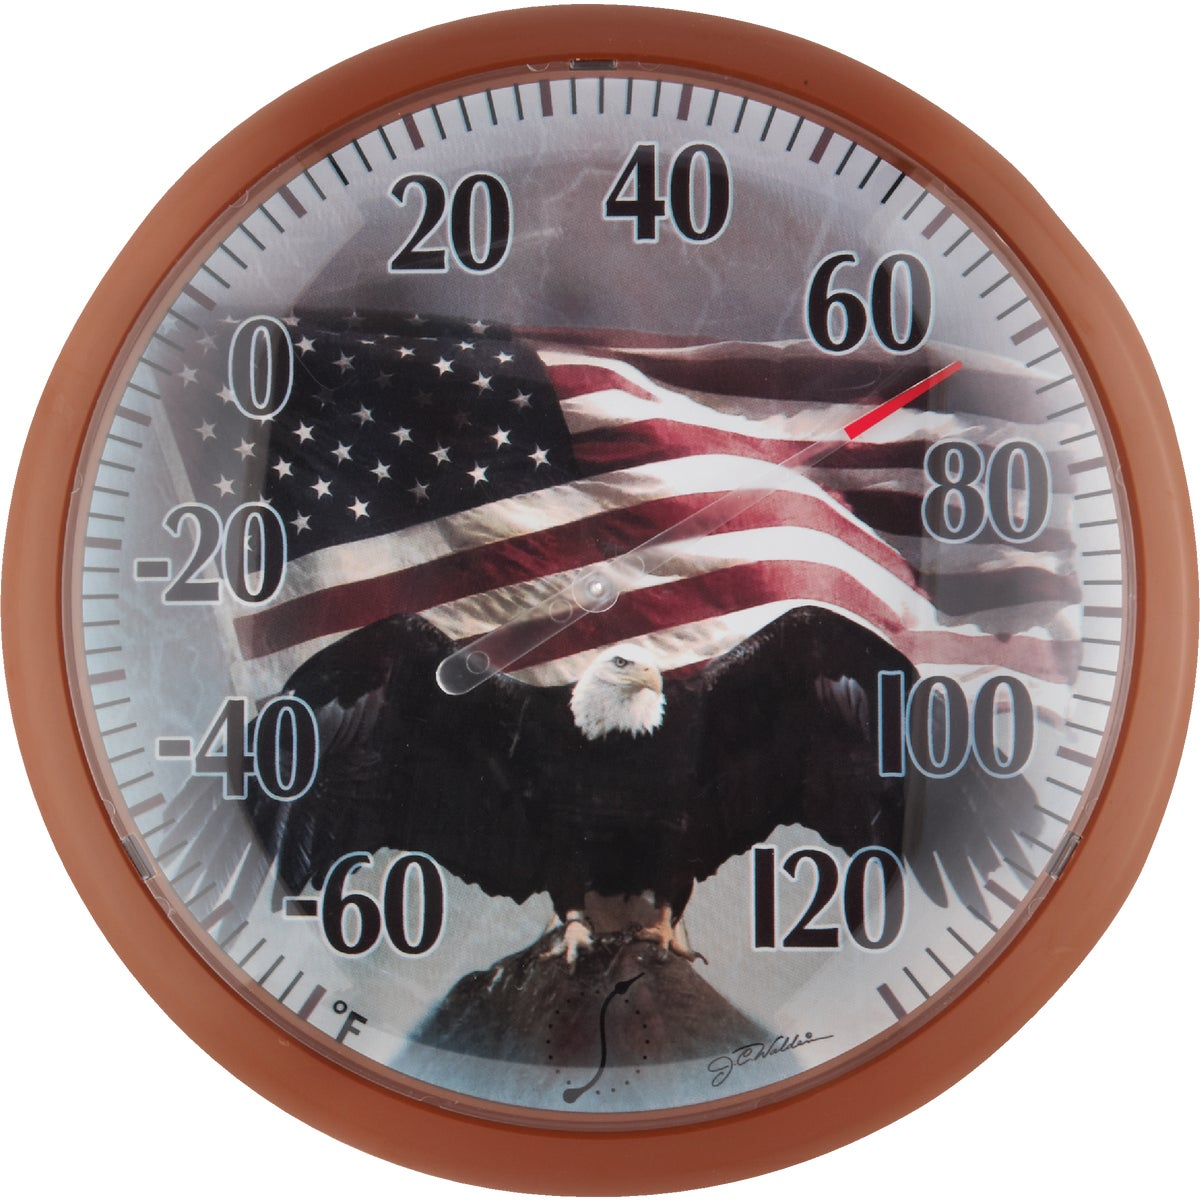 FLAG DIAL THERMOMETER - 90007-215 by Taylor Precision